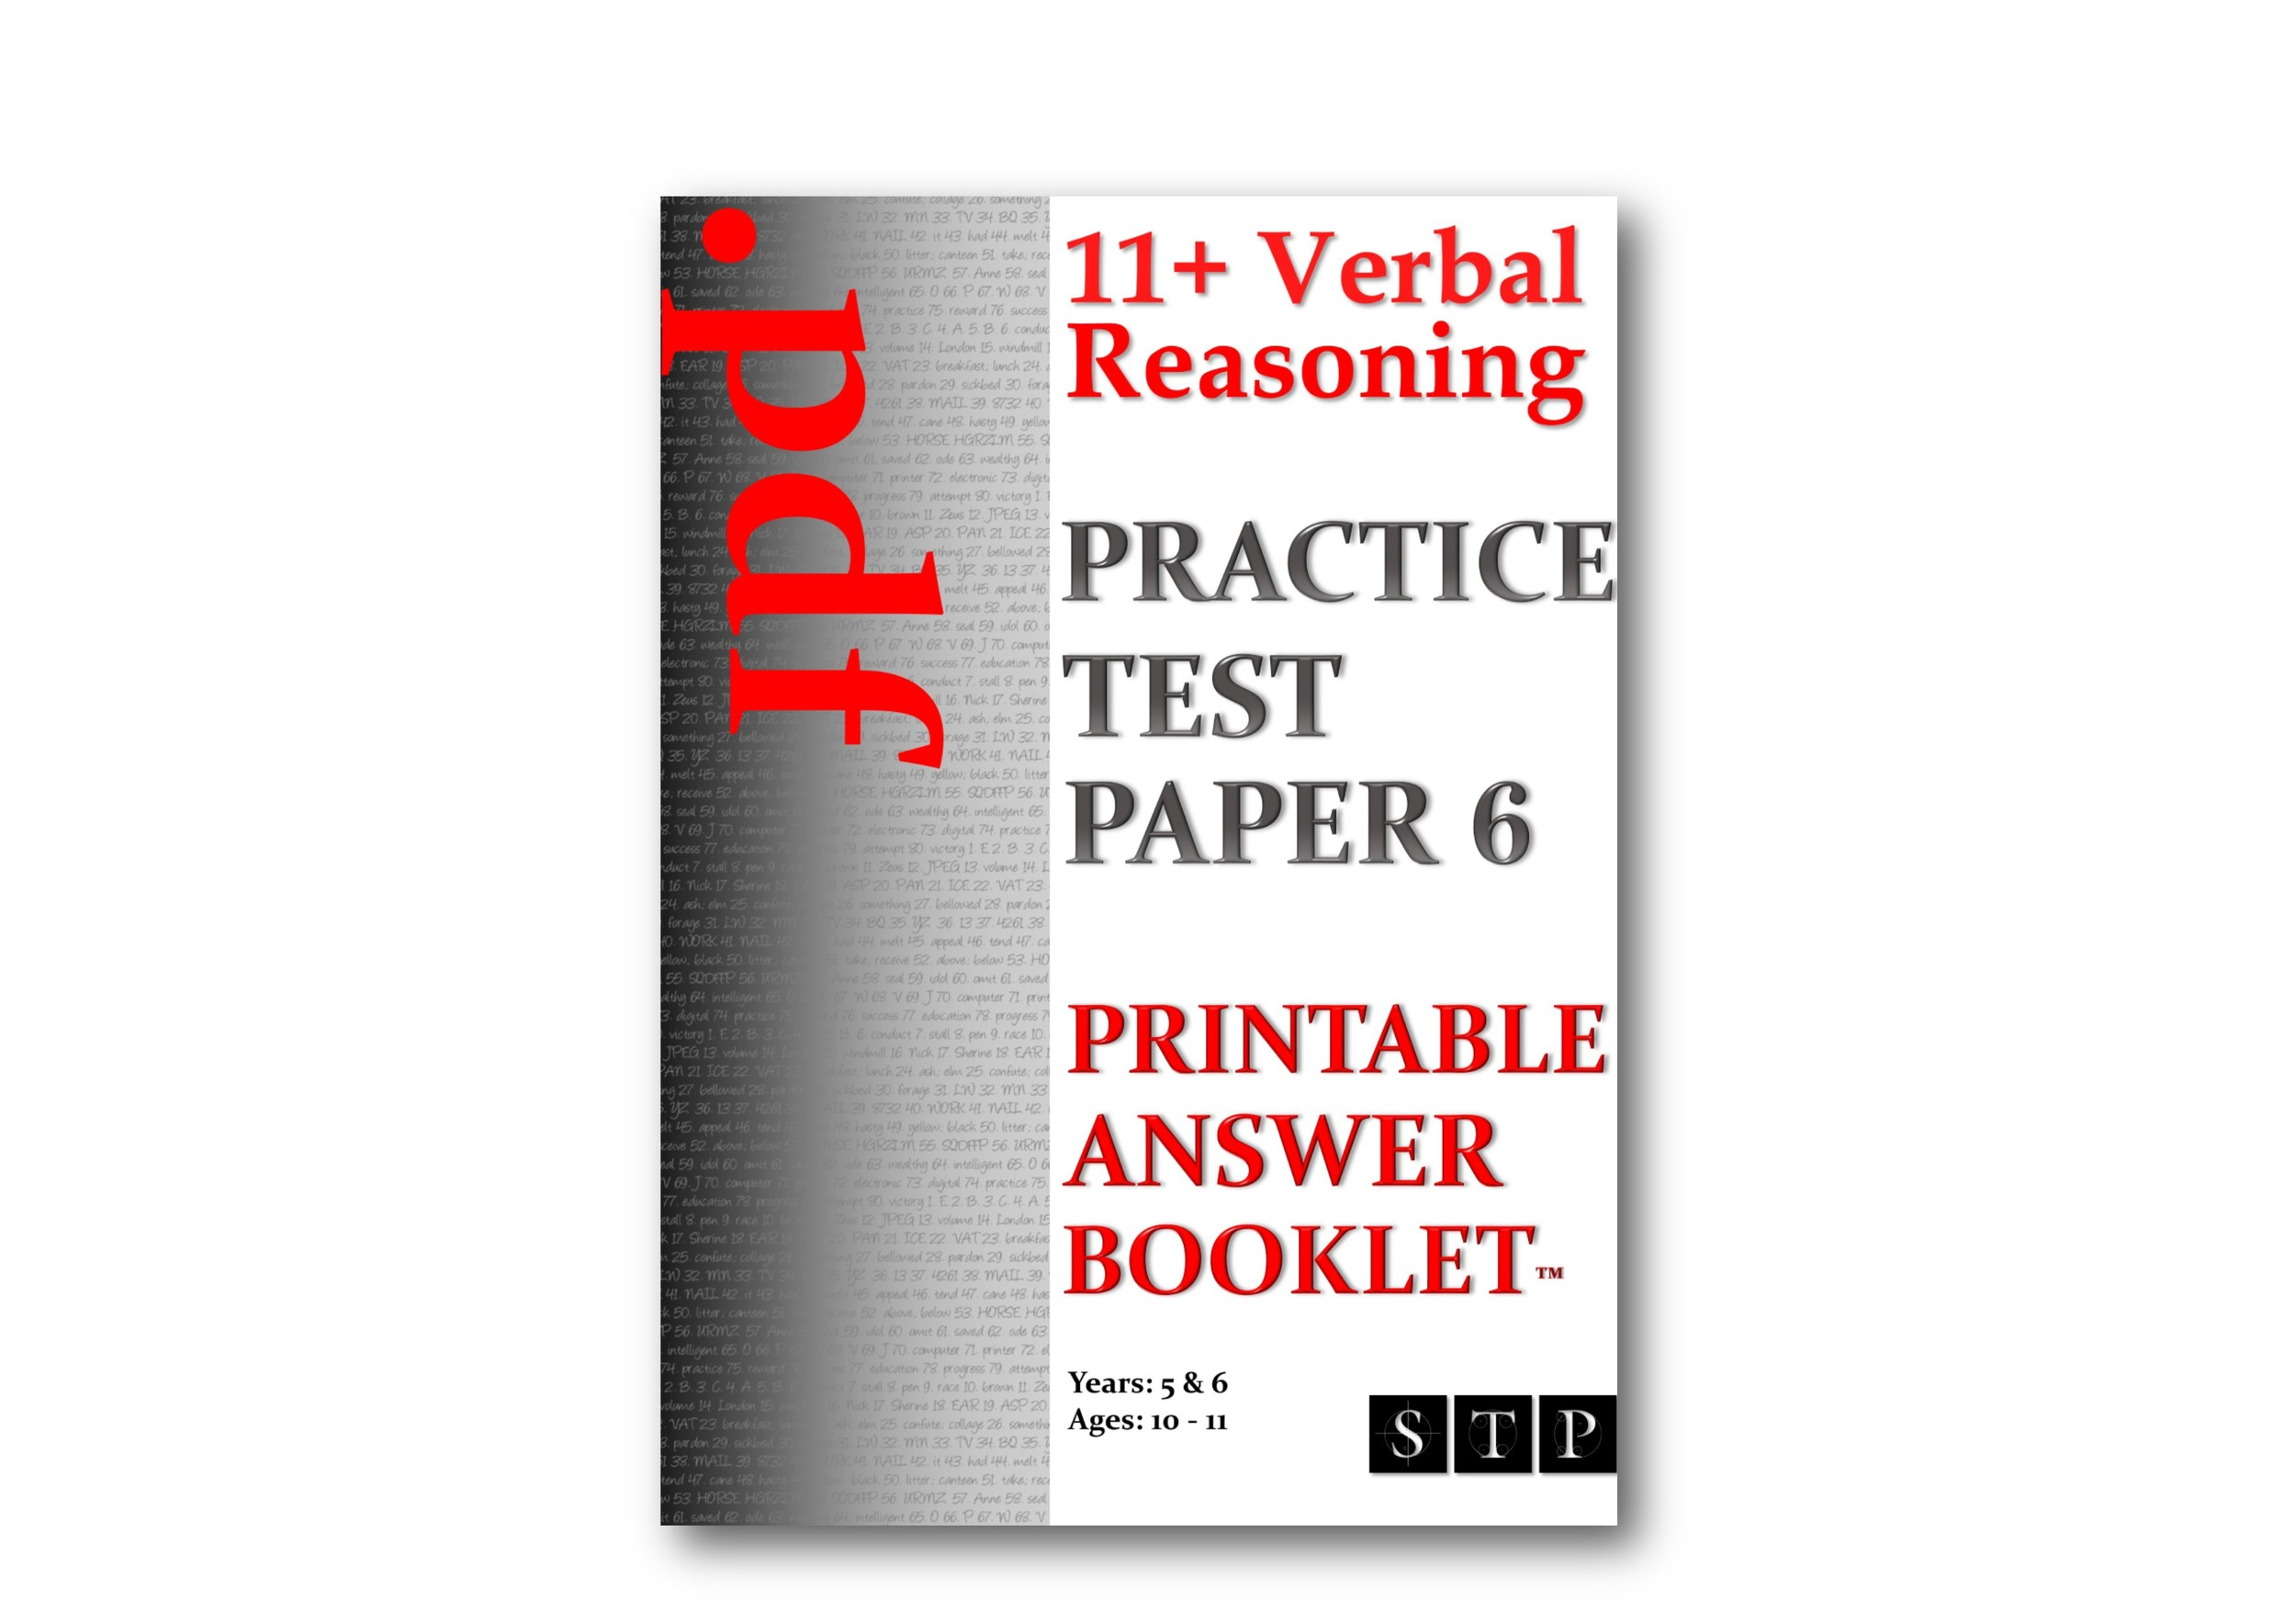 11+ Verbal Reasoning Practice Test Paper 6 (Printable Answer Booklet).jpg